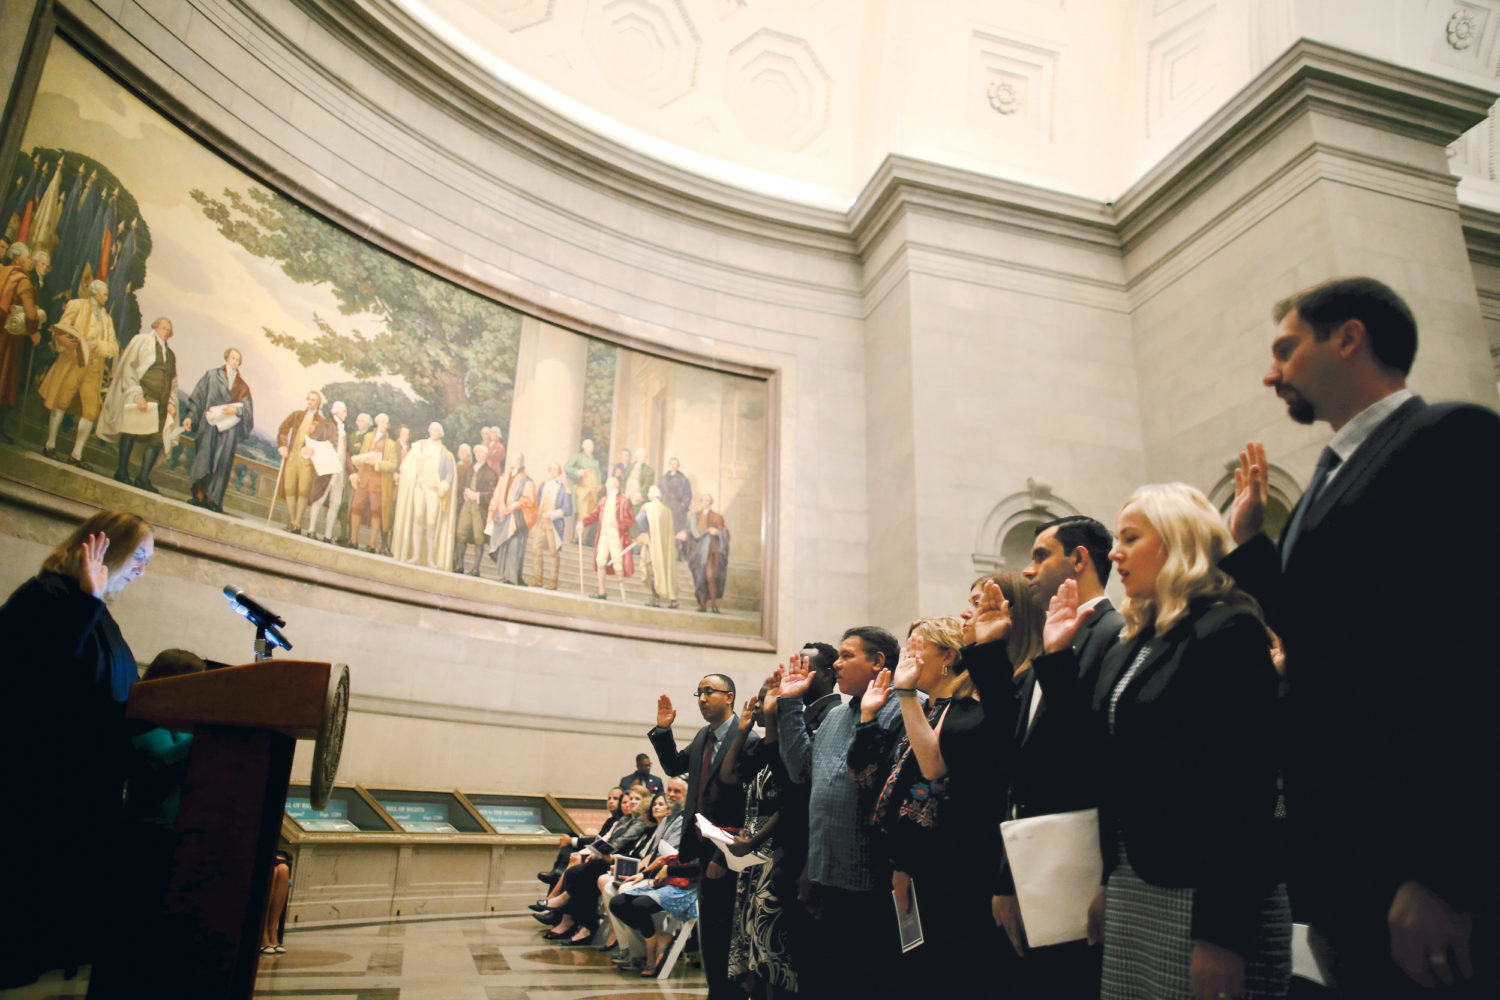 These Photographs of Immigrants Becoming U.S. Citizens in the Age of Trump Will Move You: National Archives Museum, September 15, 2017. The oath was given in the rotunda in front of the Constitution and the Declaration of Independence.